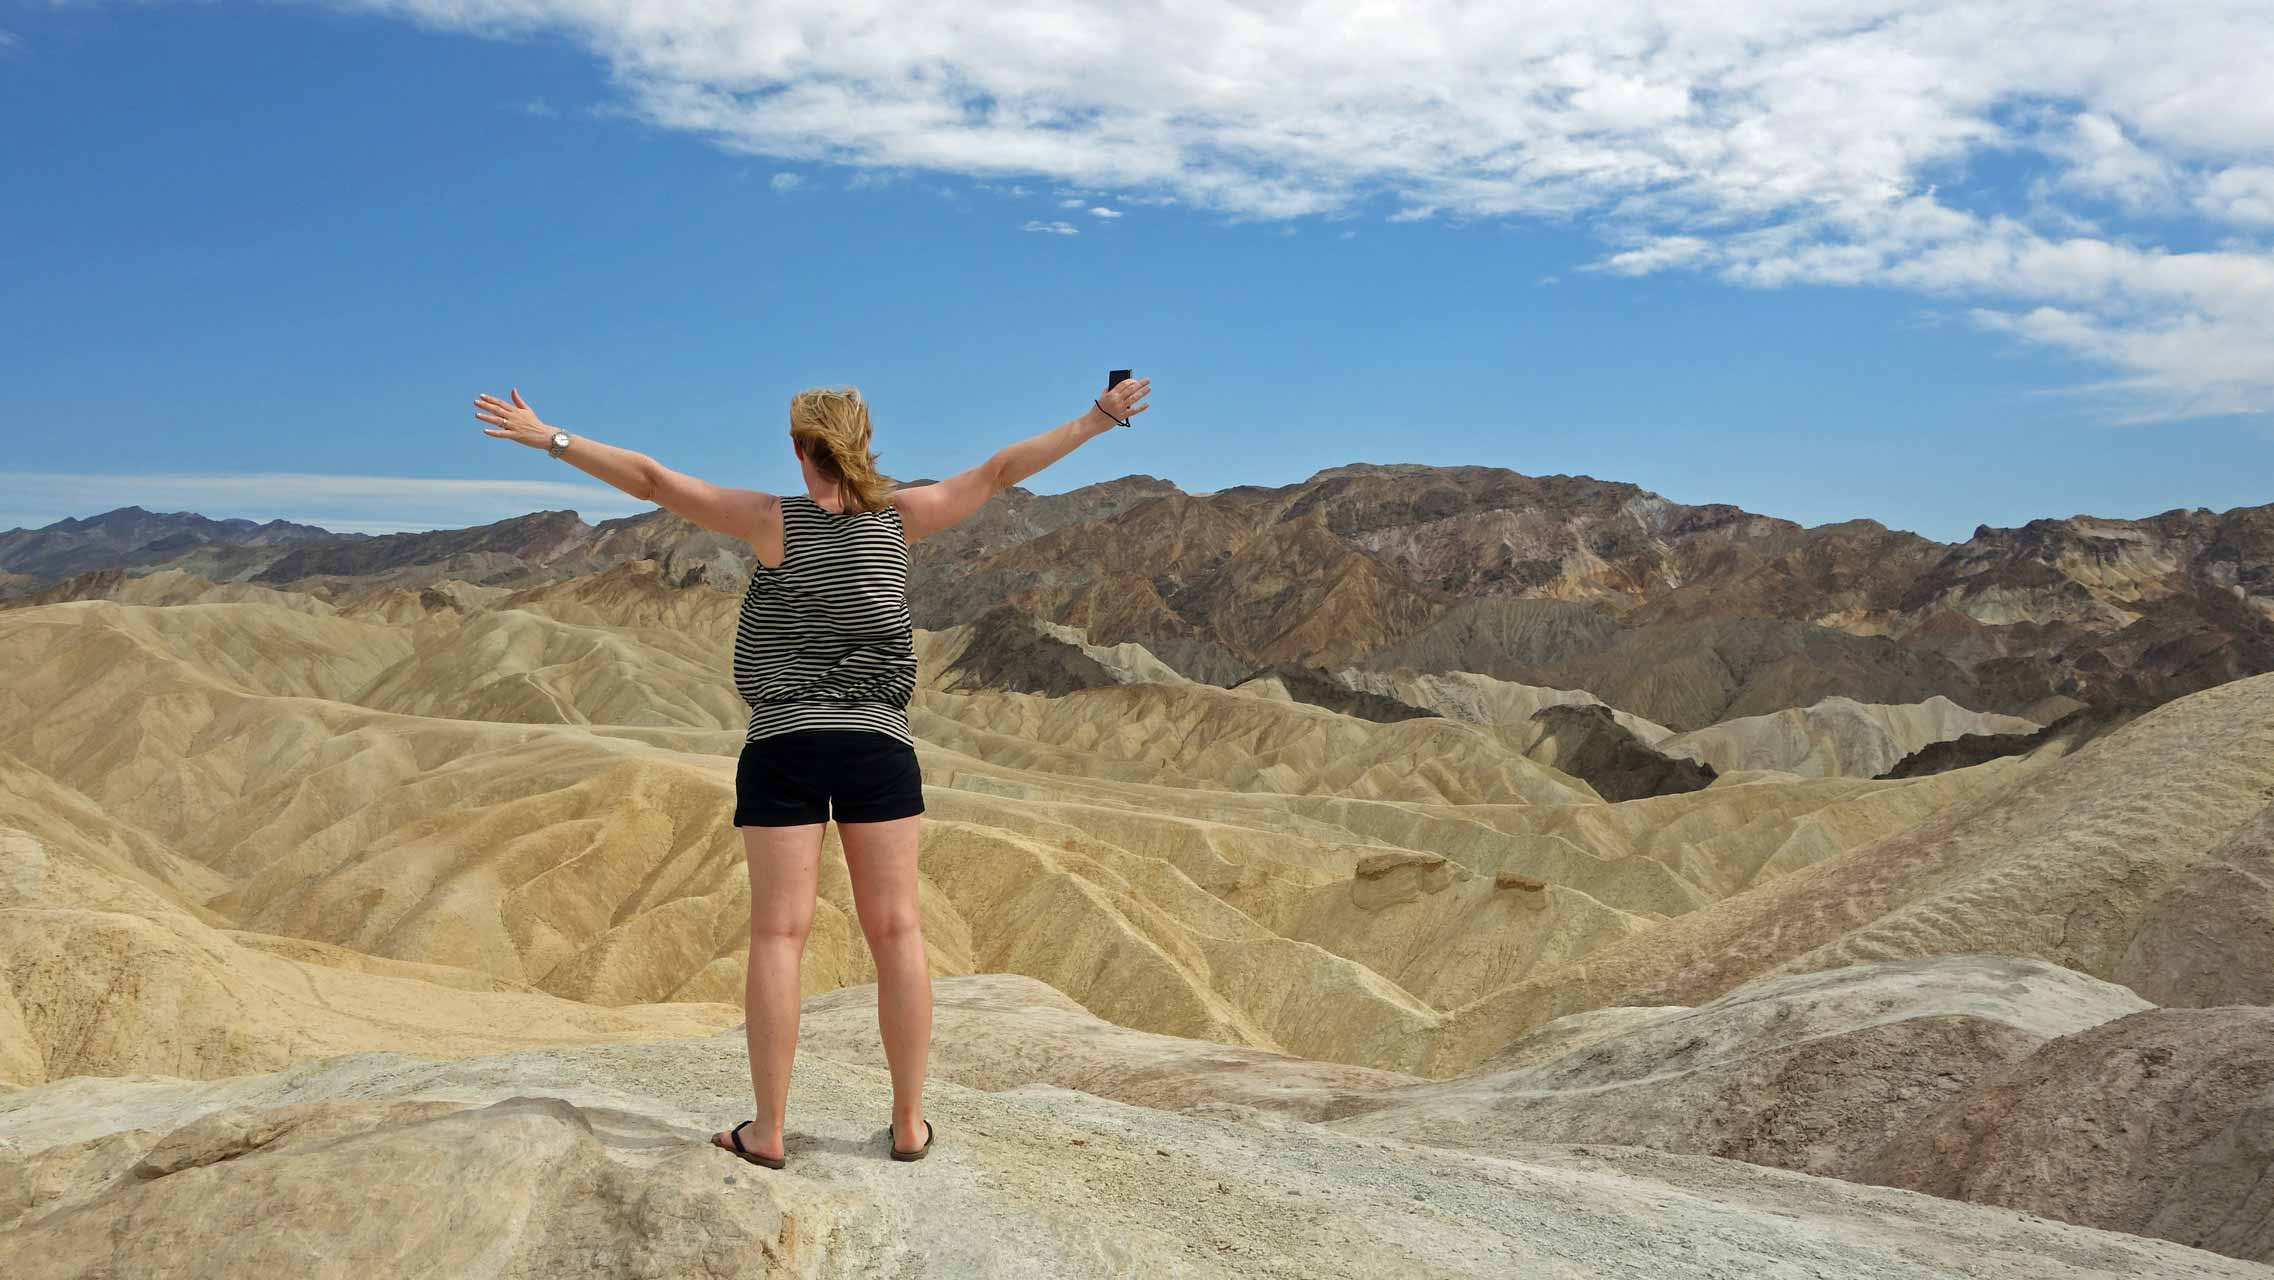 Aussicht am Zabriskie Point im Death Valley